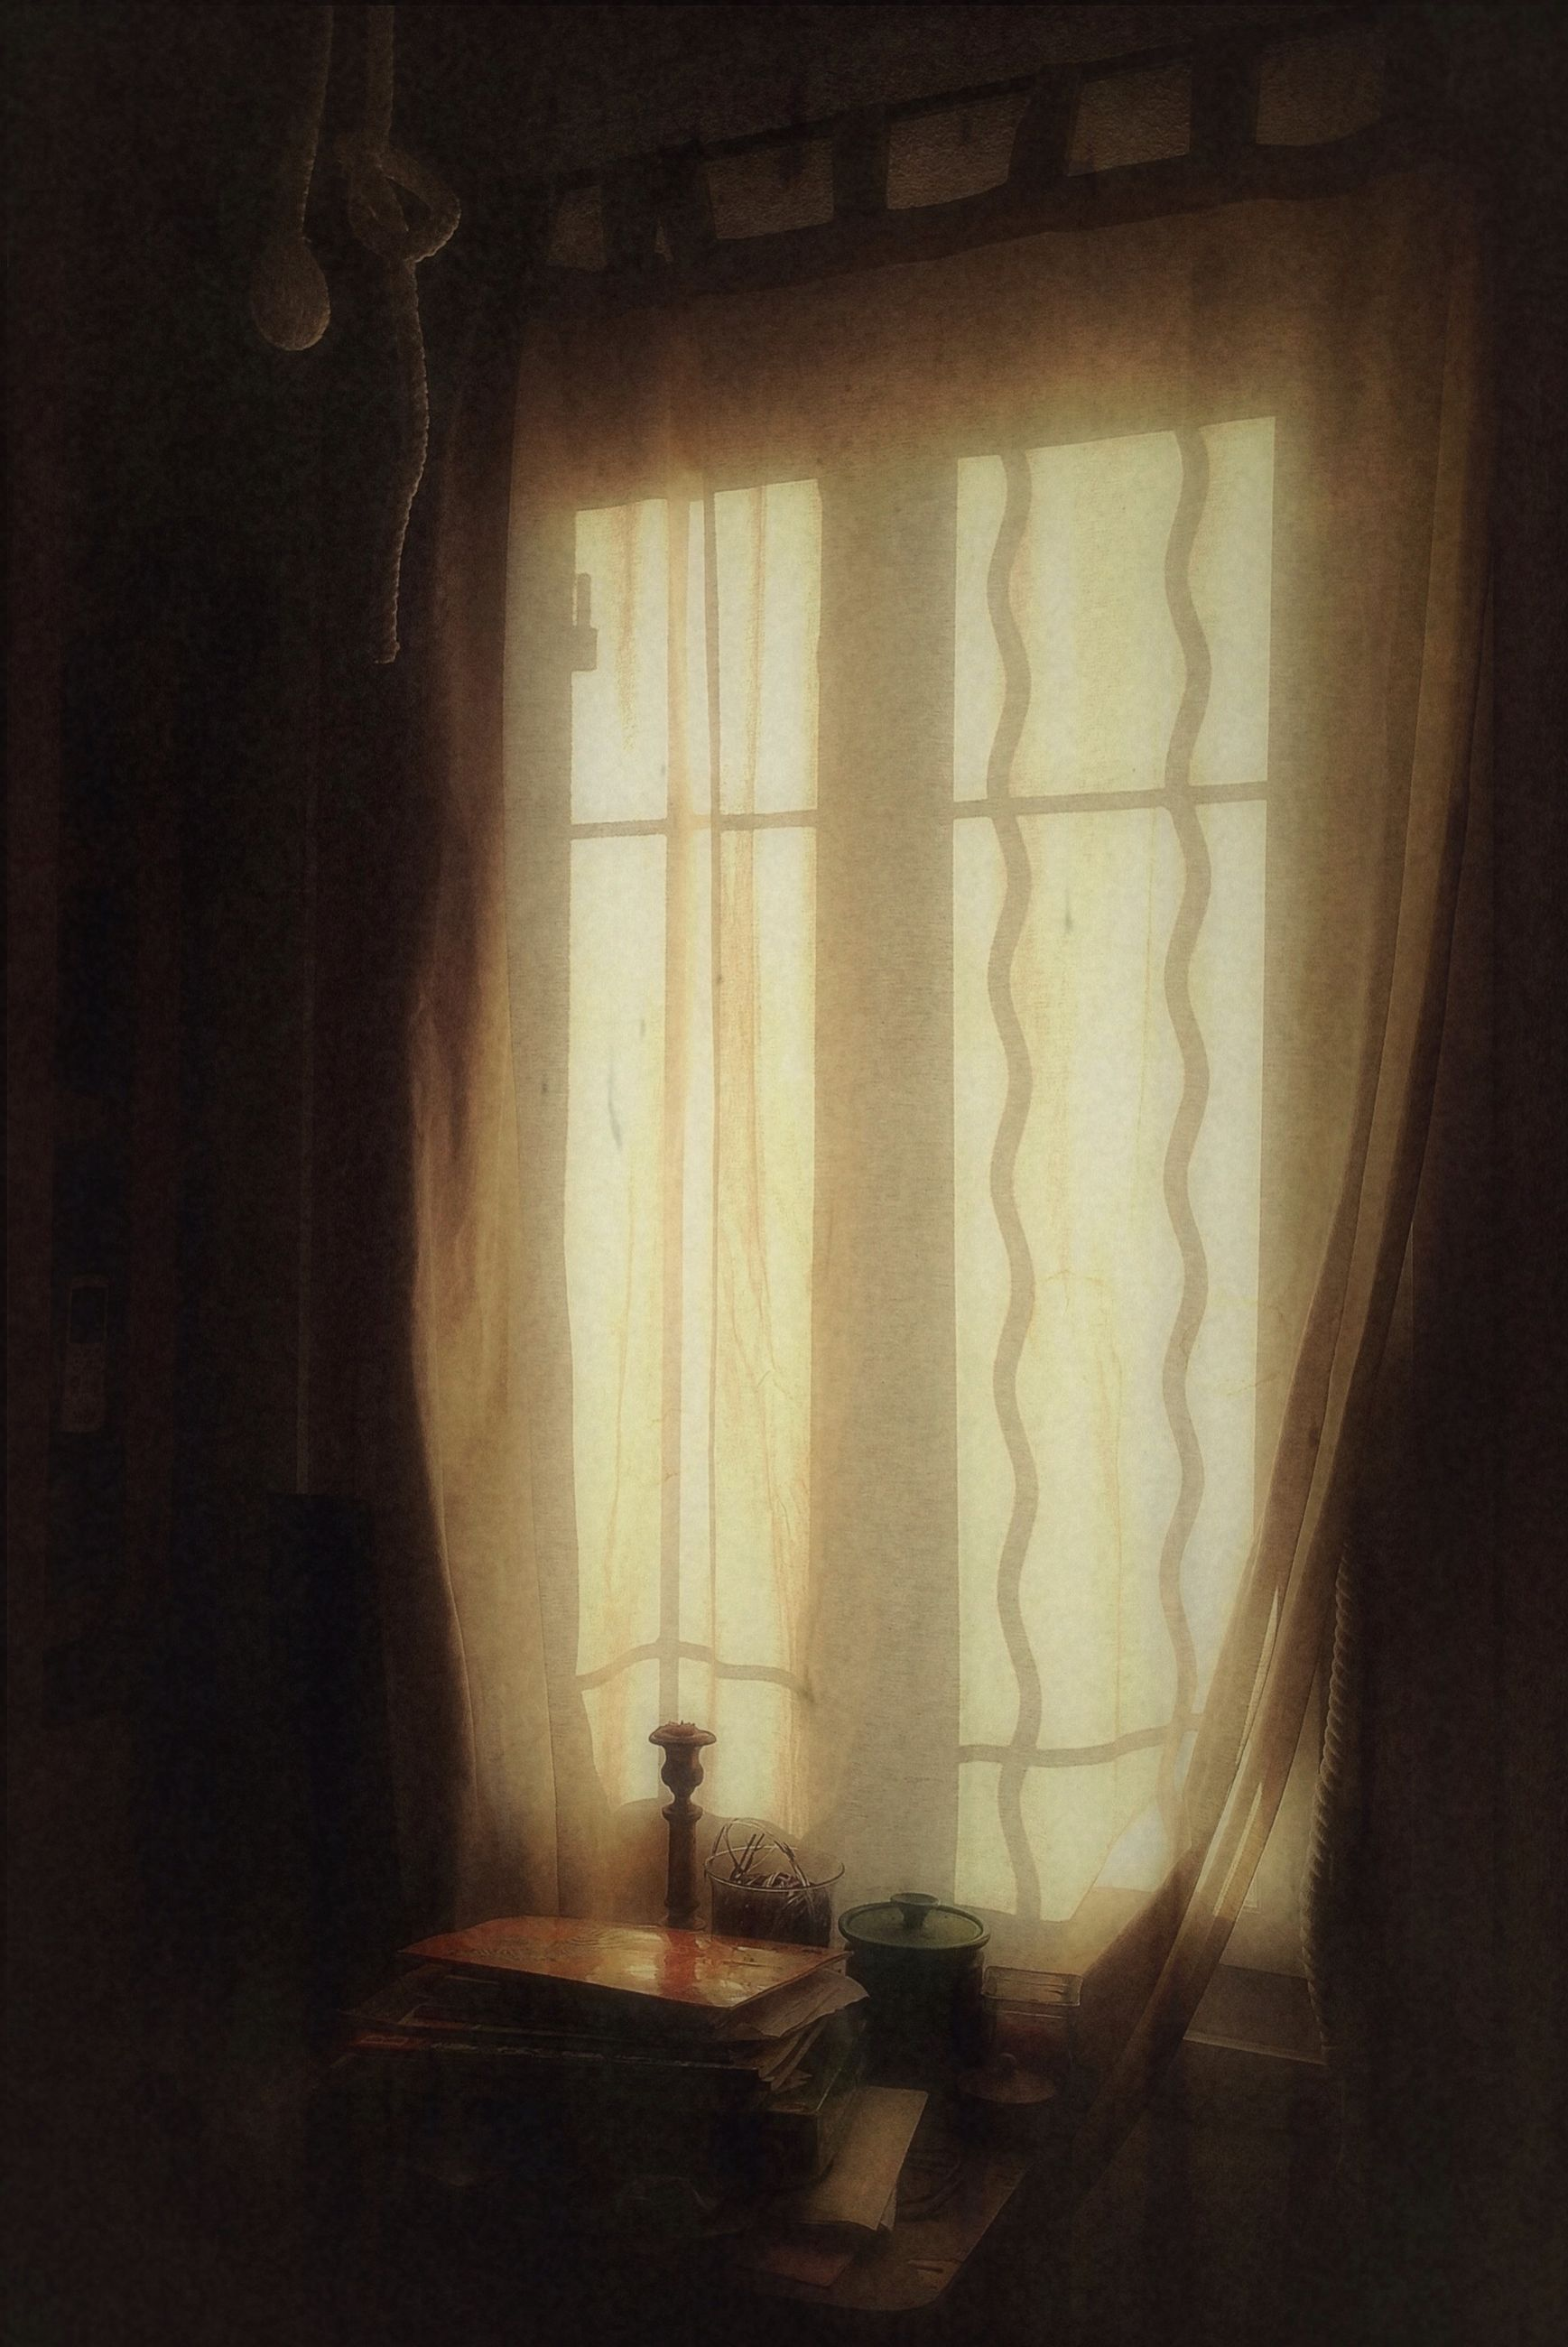 indoors, home interior, window, curtain, domestic room, dark, wall - building feature, shadow, glass - material, room, darkroom, domestic life, transparent, sunlight, house, door, wall, home